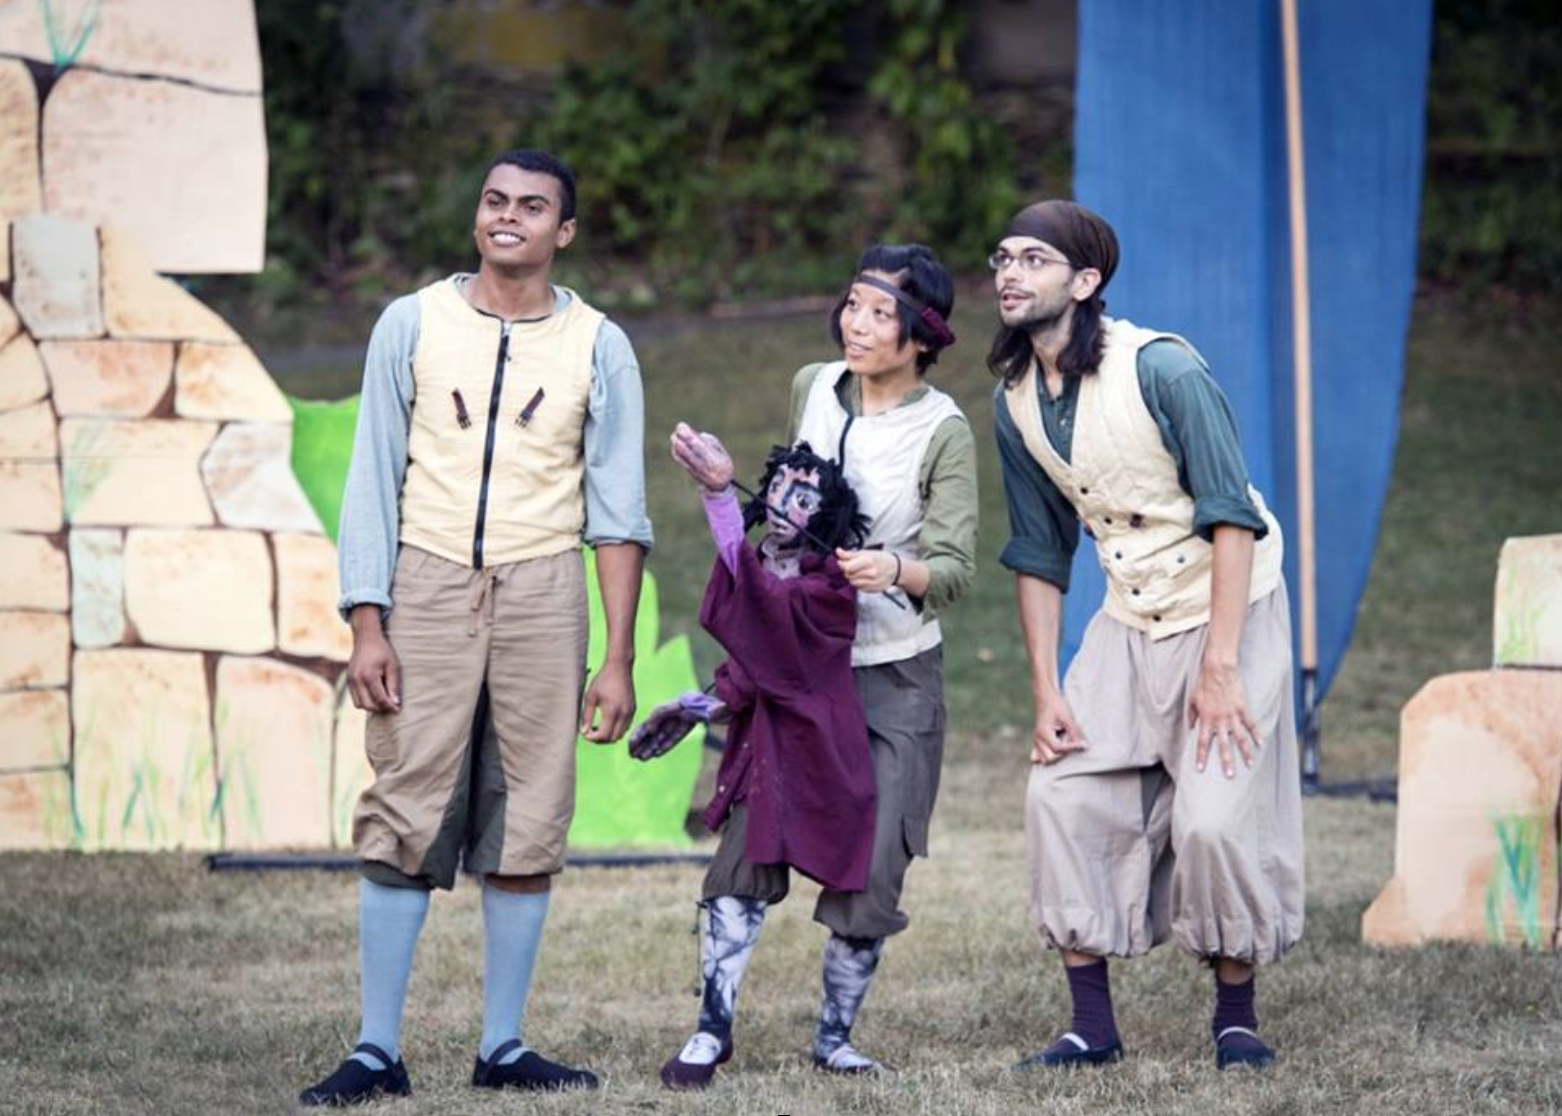 After visiting Chiemgau in 2015 I was inspired to produce Michael Ende's famous children's story Momo. This is a photo from a performance on the village green in Philmont, NY, part of a tour during the summer of 2016. From left to right are Michael Balin, Nao Kobayashi, and Gabriel Rodriguez. Nao is playing Momo.